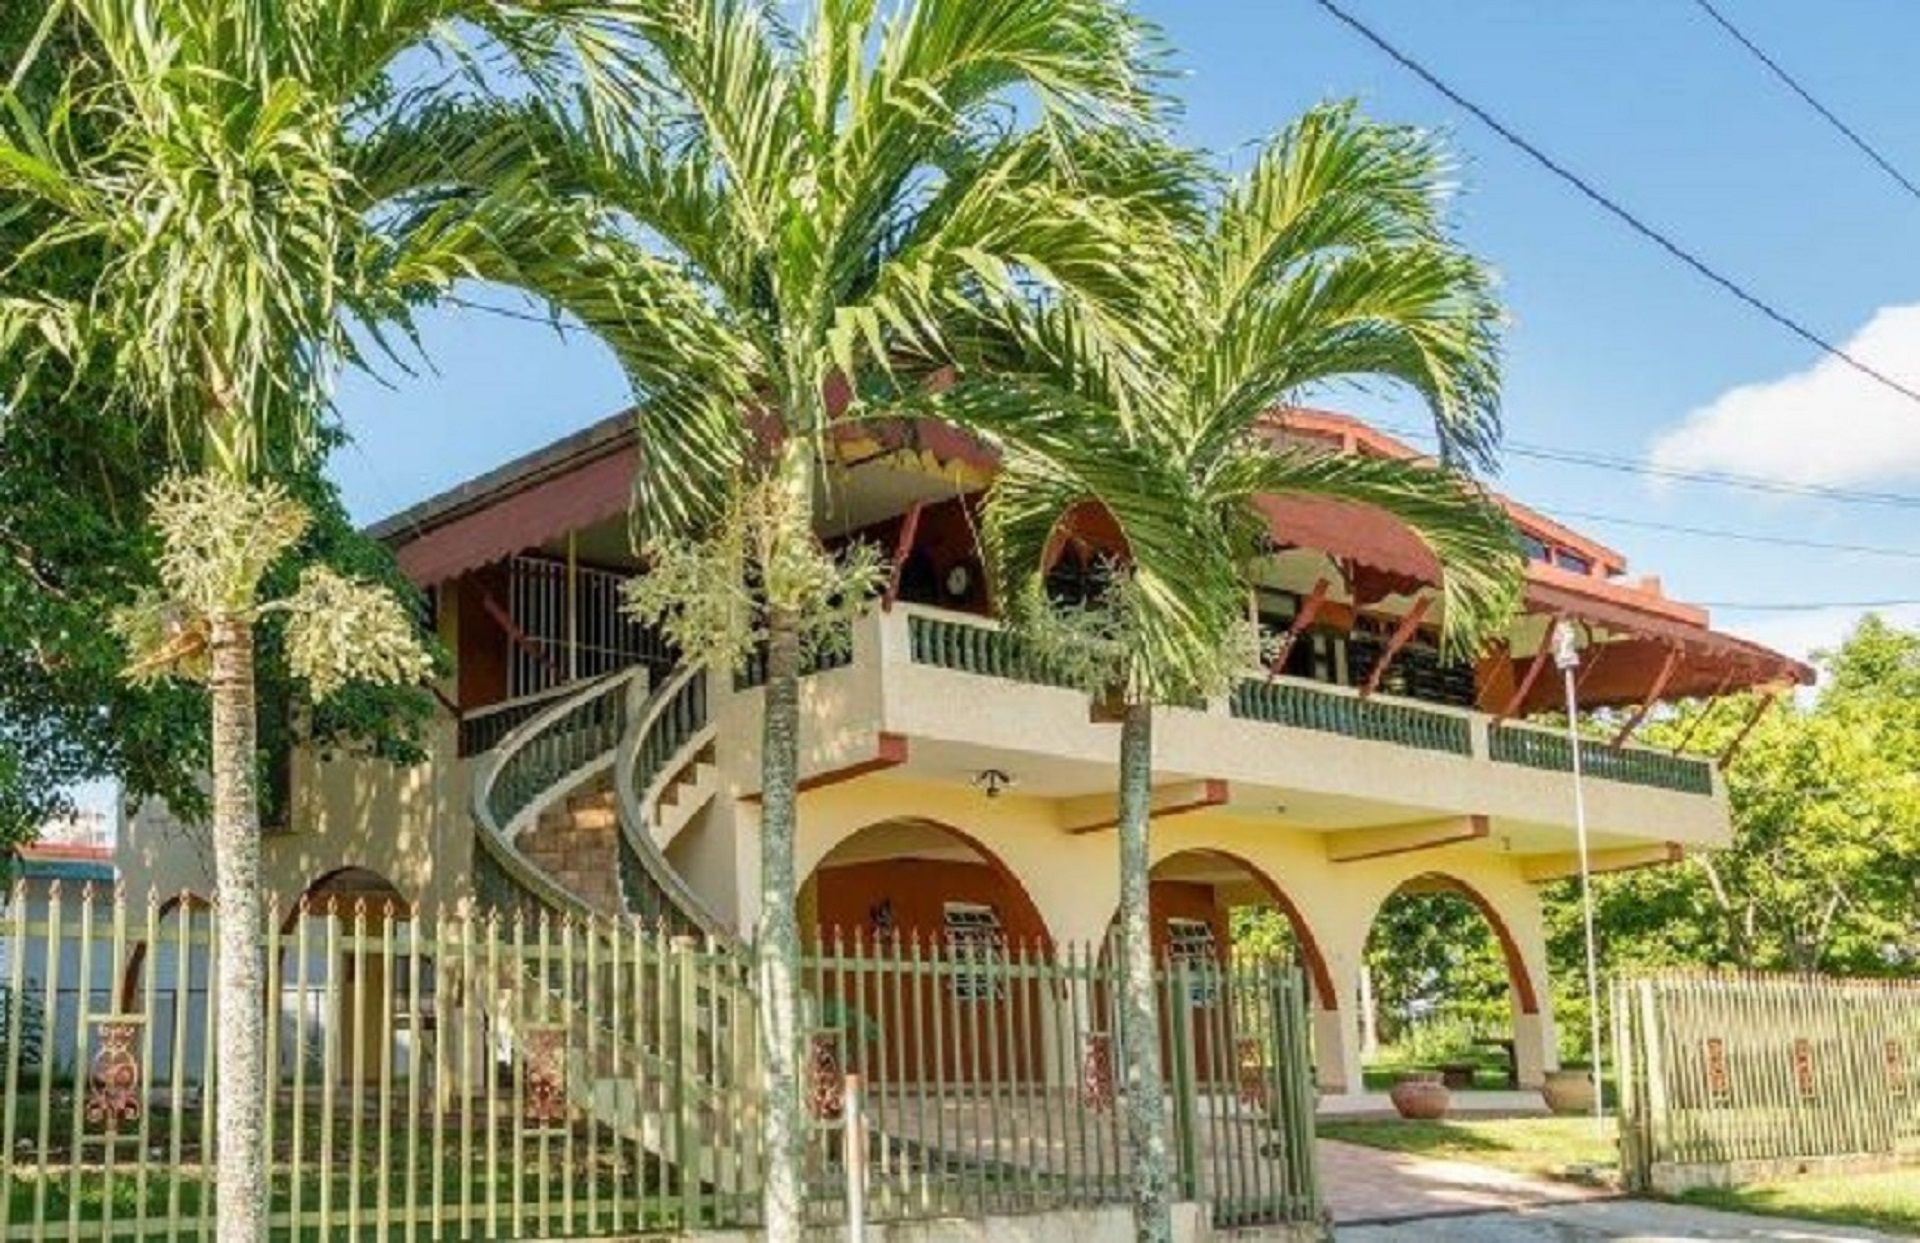 Beautiful Casa Aceituna